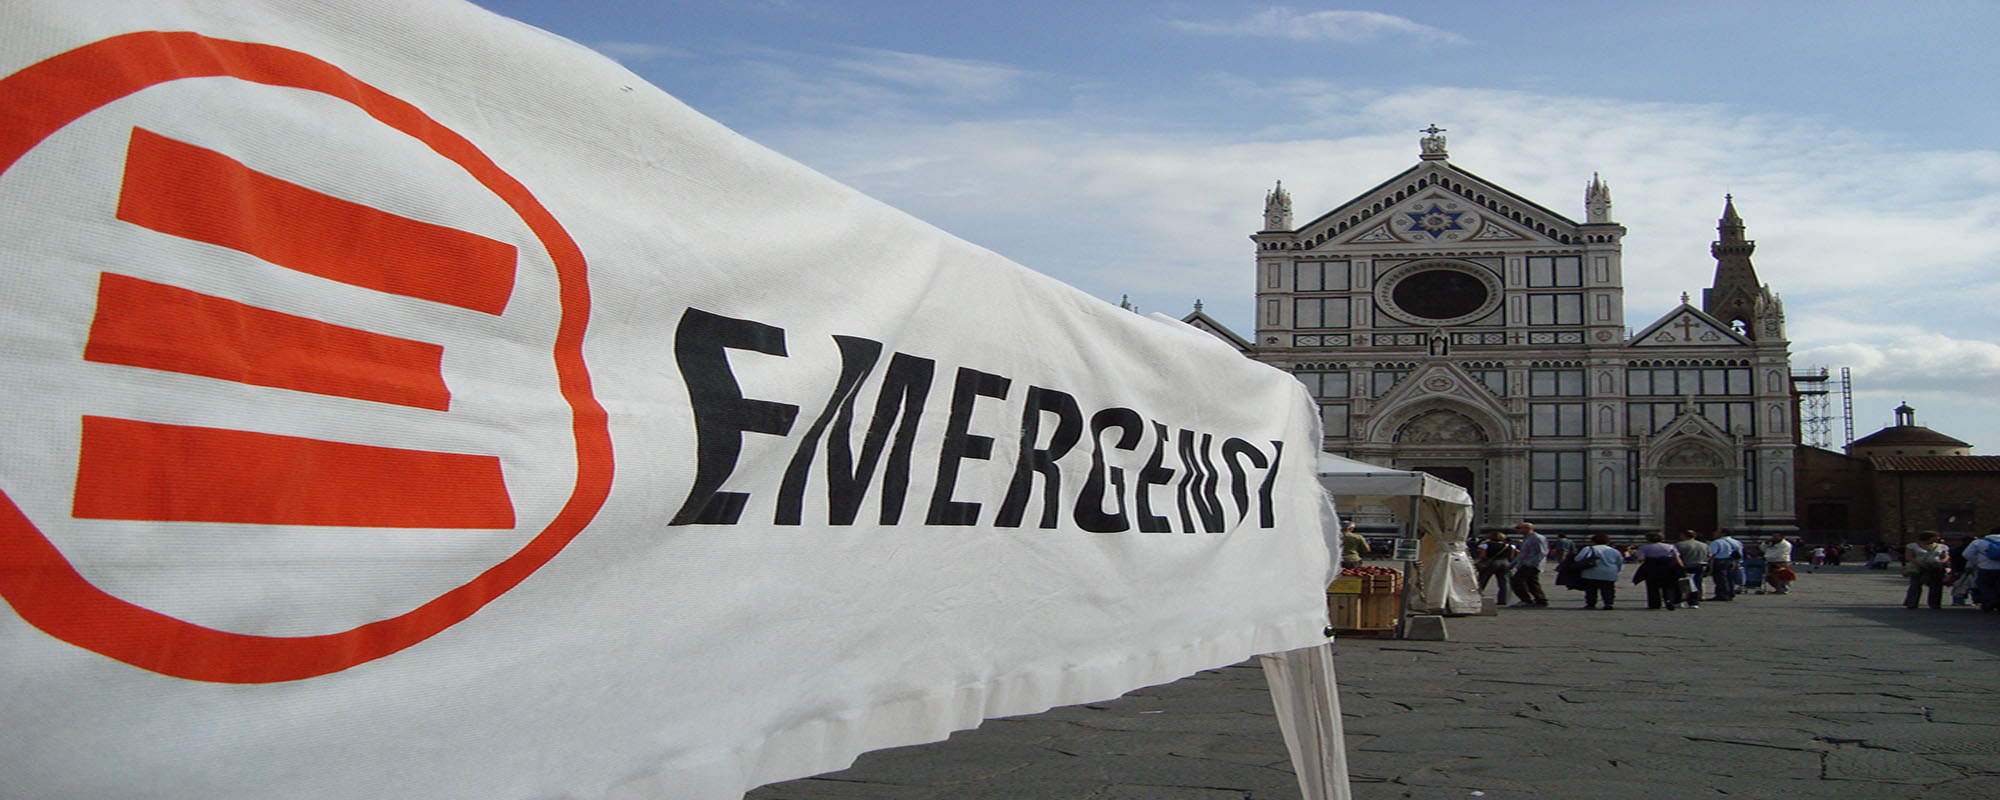 Emergency Firenze